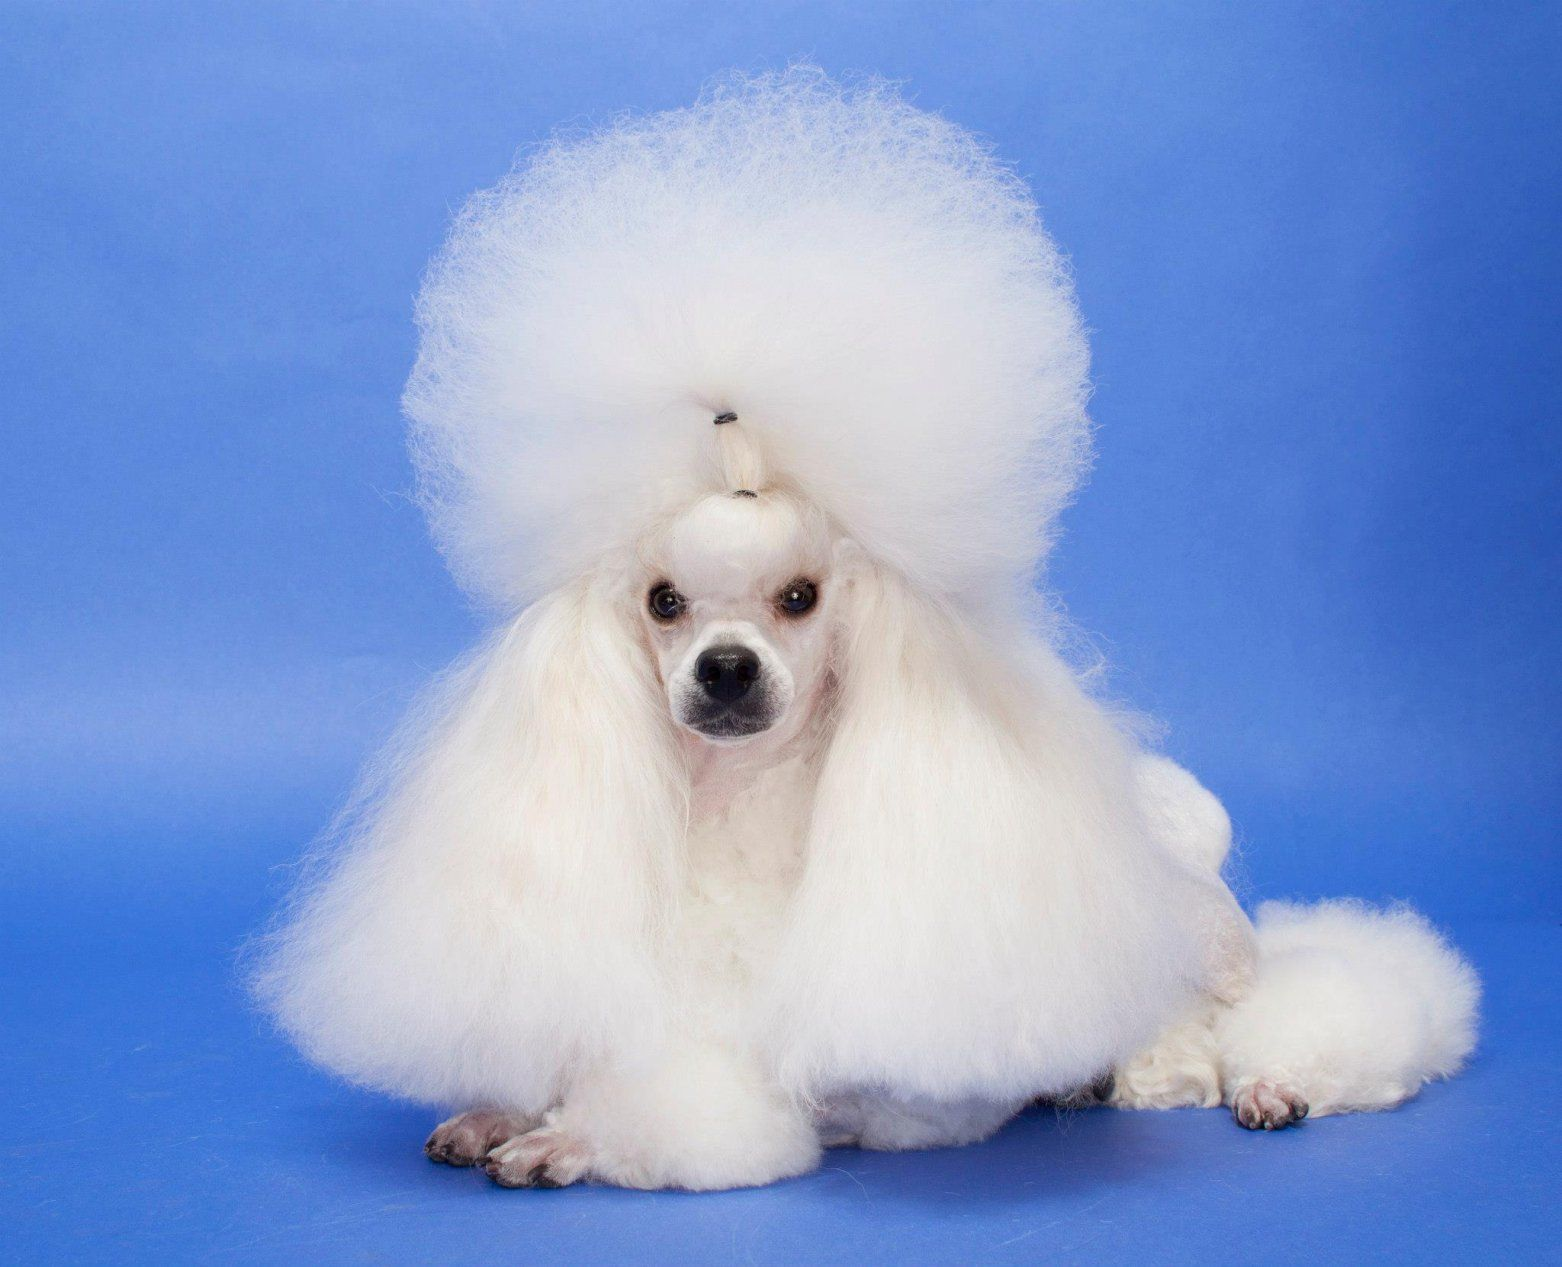 Beautiful toy poodle dogs poodles animals bestfriends